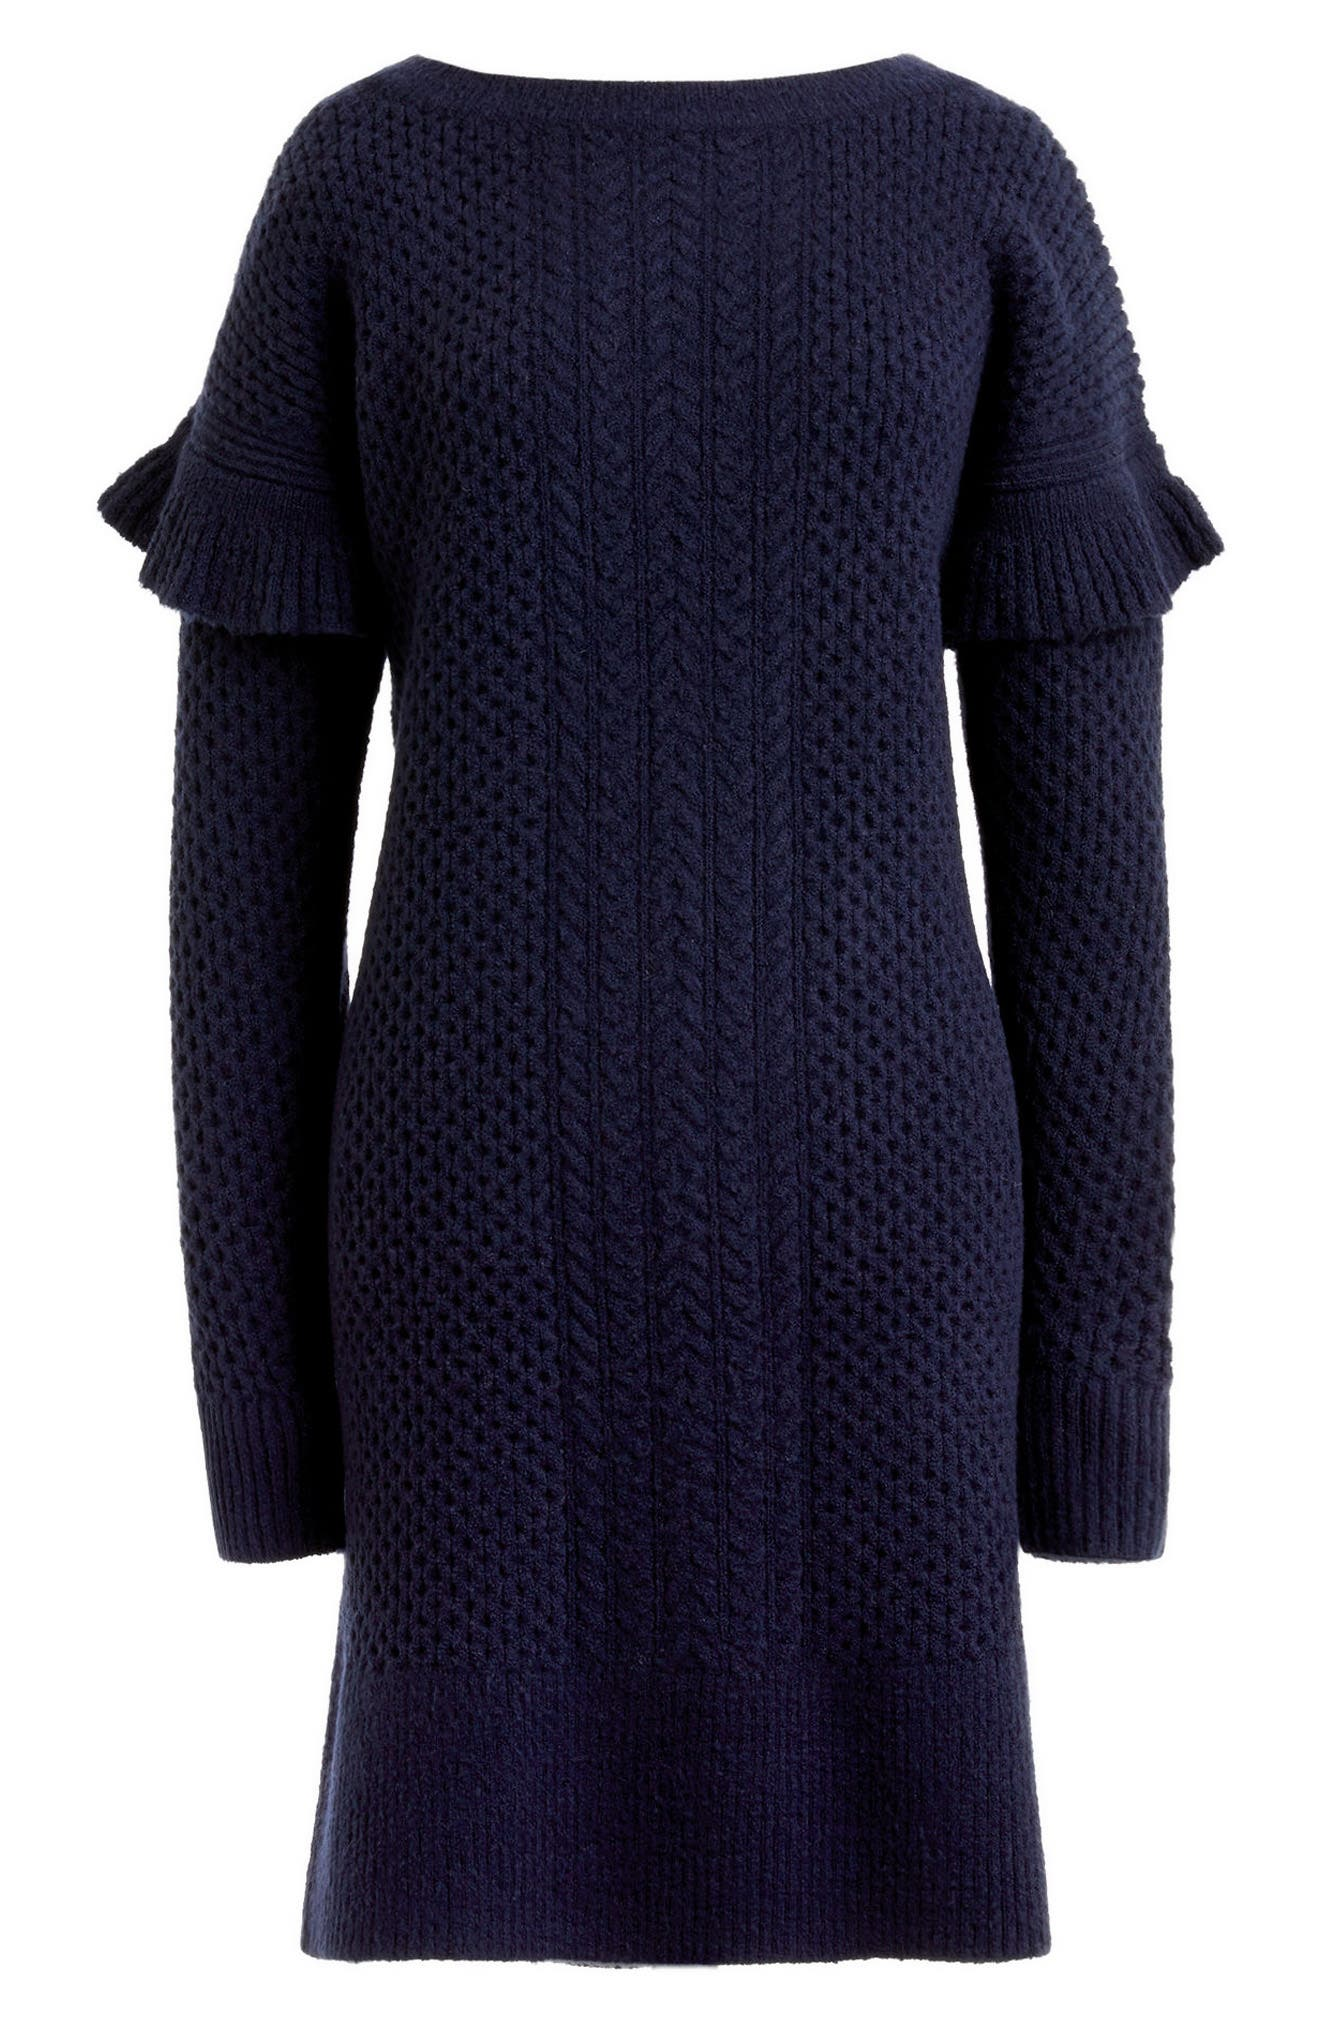 Holden Ruffle Sleeve Cable Knit Sweater Dress,                             Alternate thumbnail 4, color,                             400